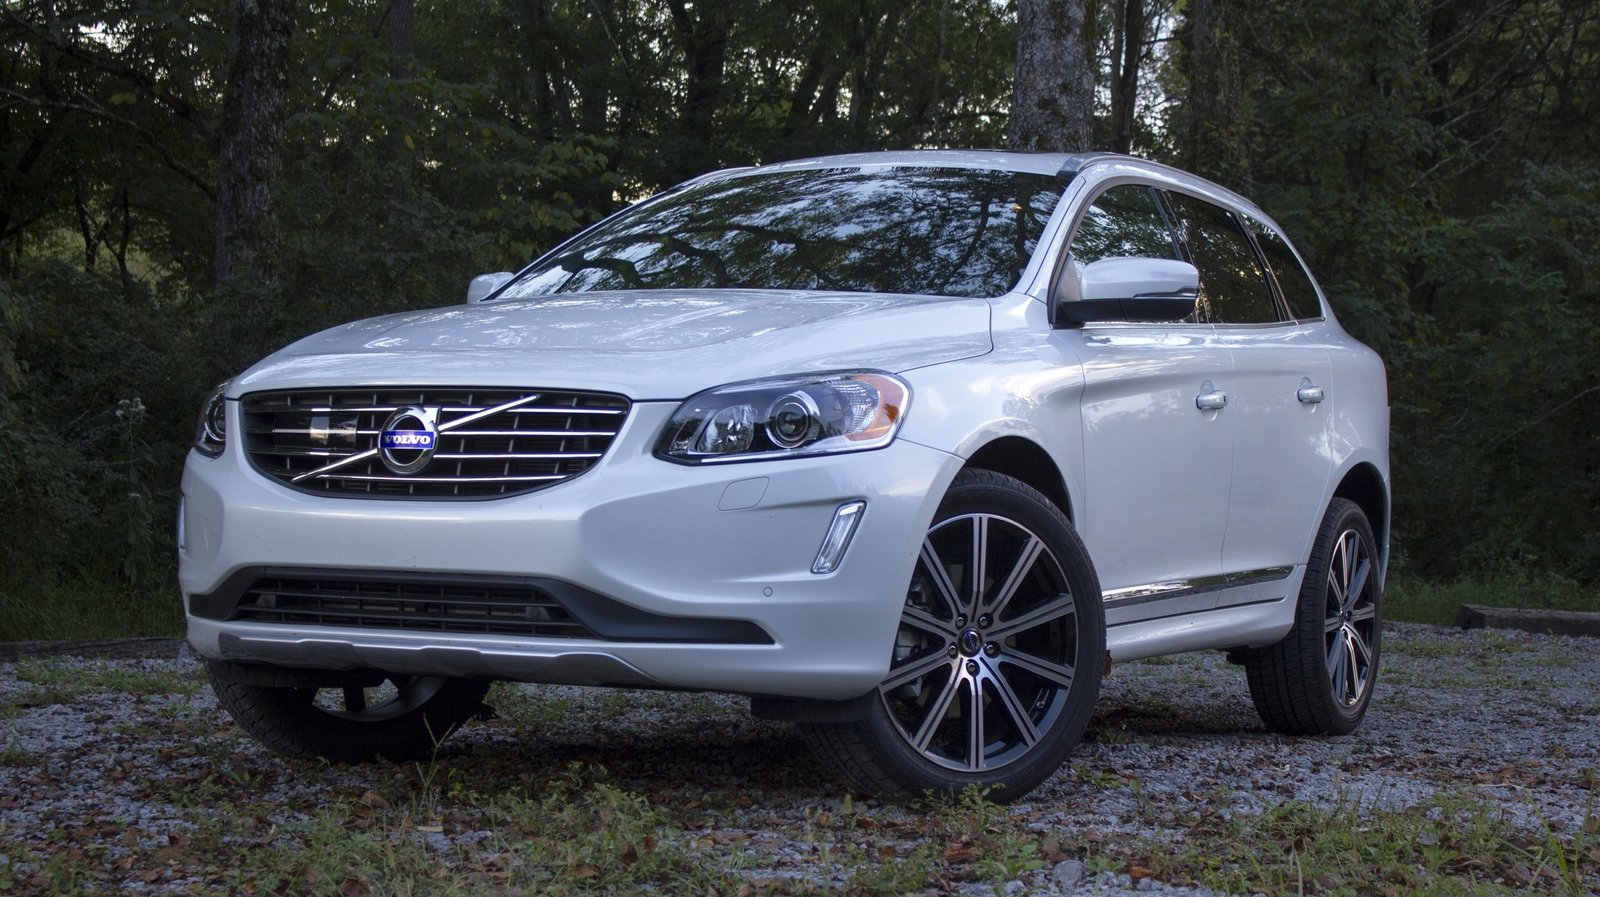 2015 volvo xc60 styling review release date price and specs. Black Bedroom Furniture Sets. Home Design Ideas